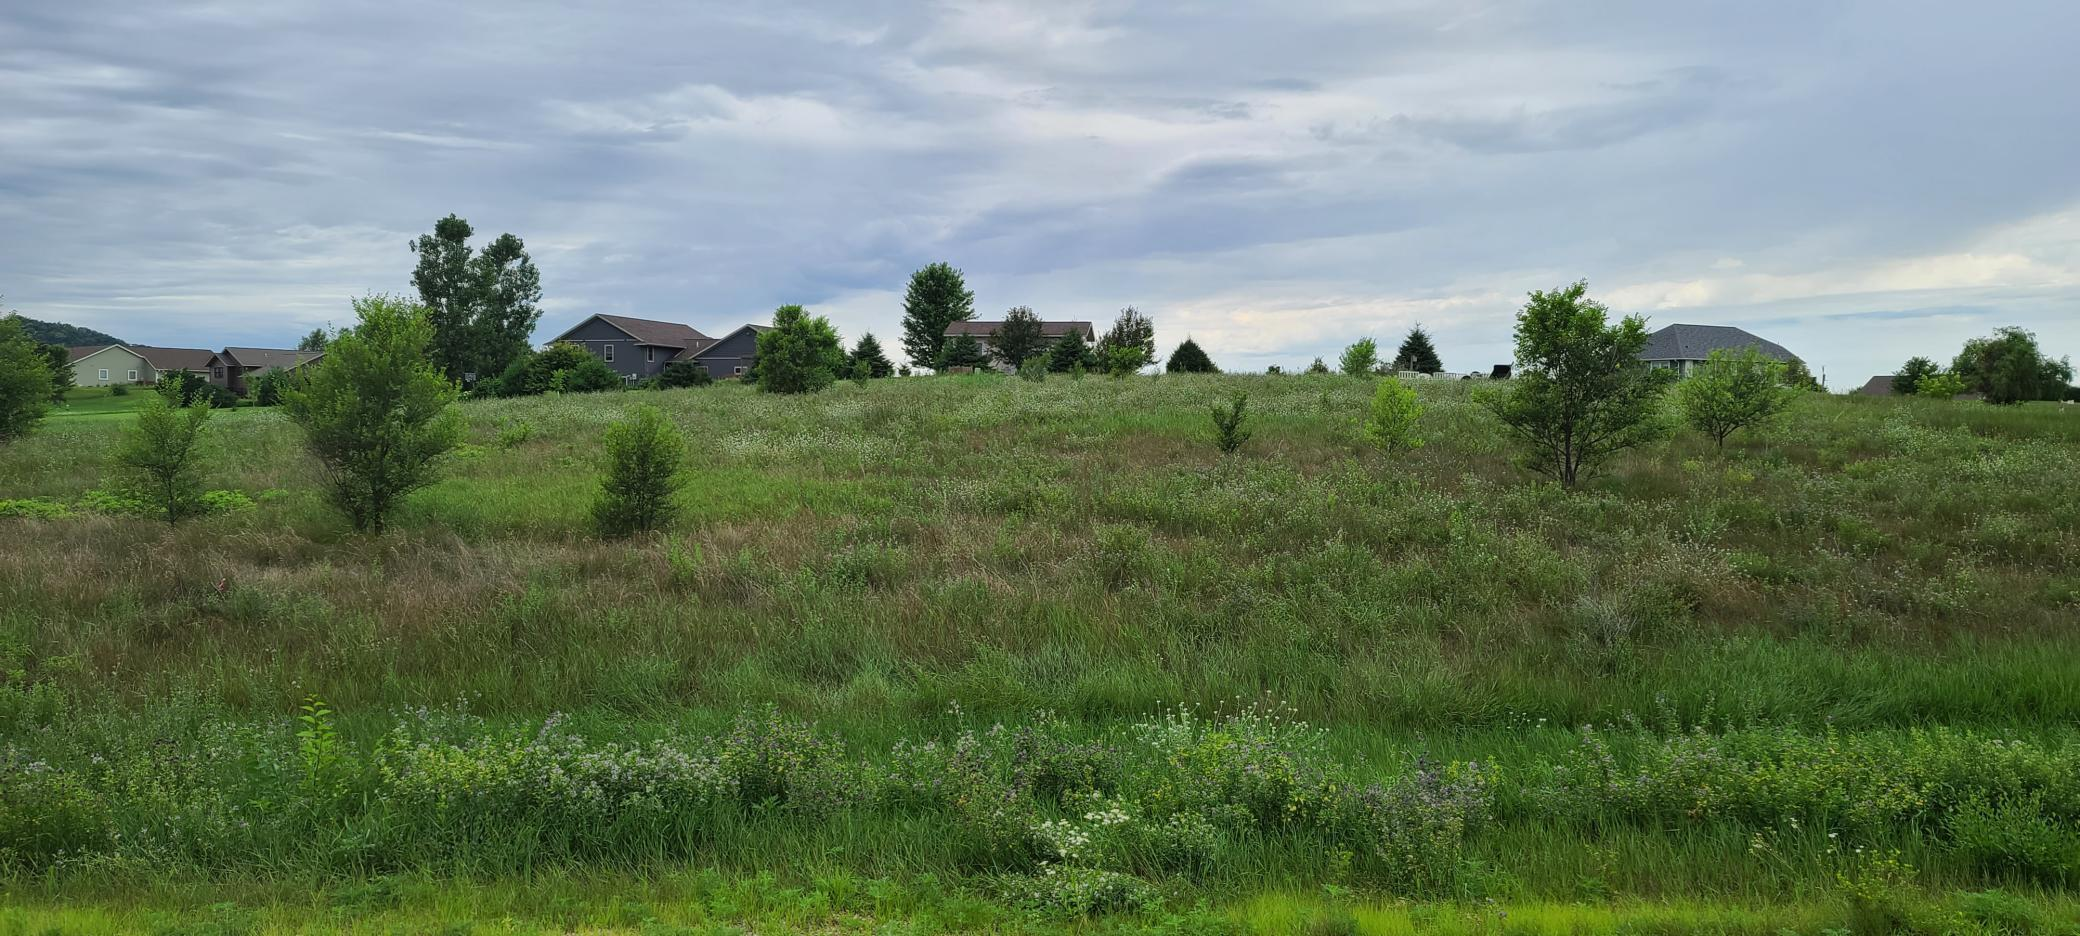 Lot 23 Larkspur Rd Property Photo - Trempealeau Twp, WI real estate listing